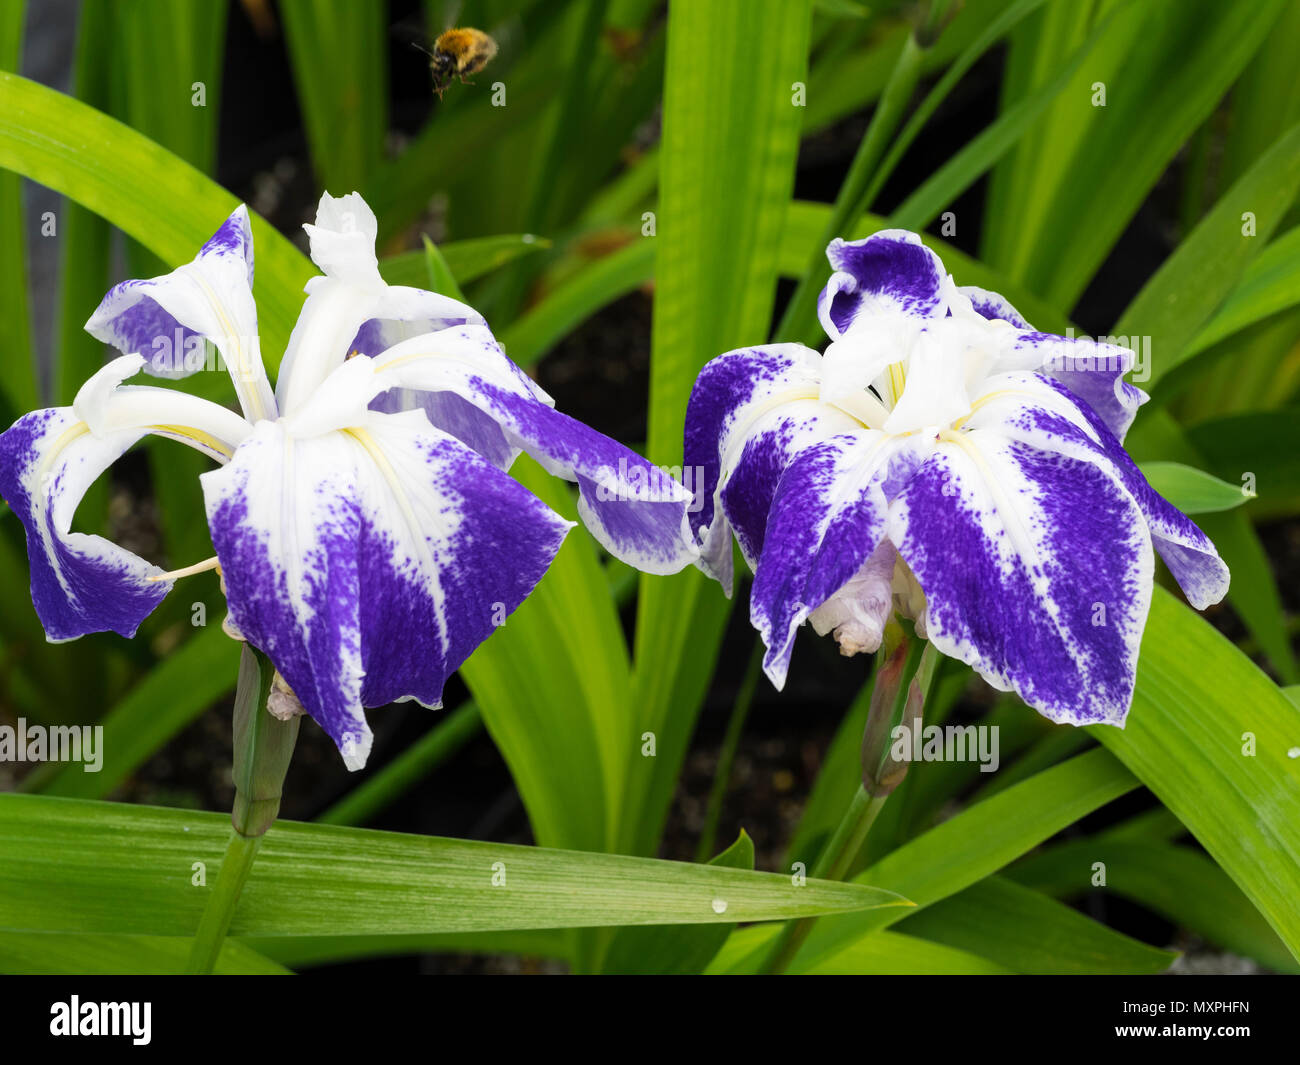 white-and-blue-marked-early-summer-flowers-of-the-marginal-aquatic-water-iris-iris-laevigata-colchesterensis-MXPHFN.jpg